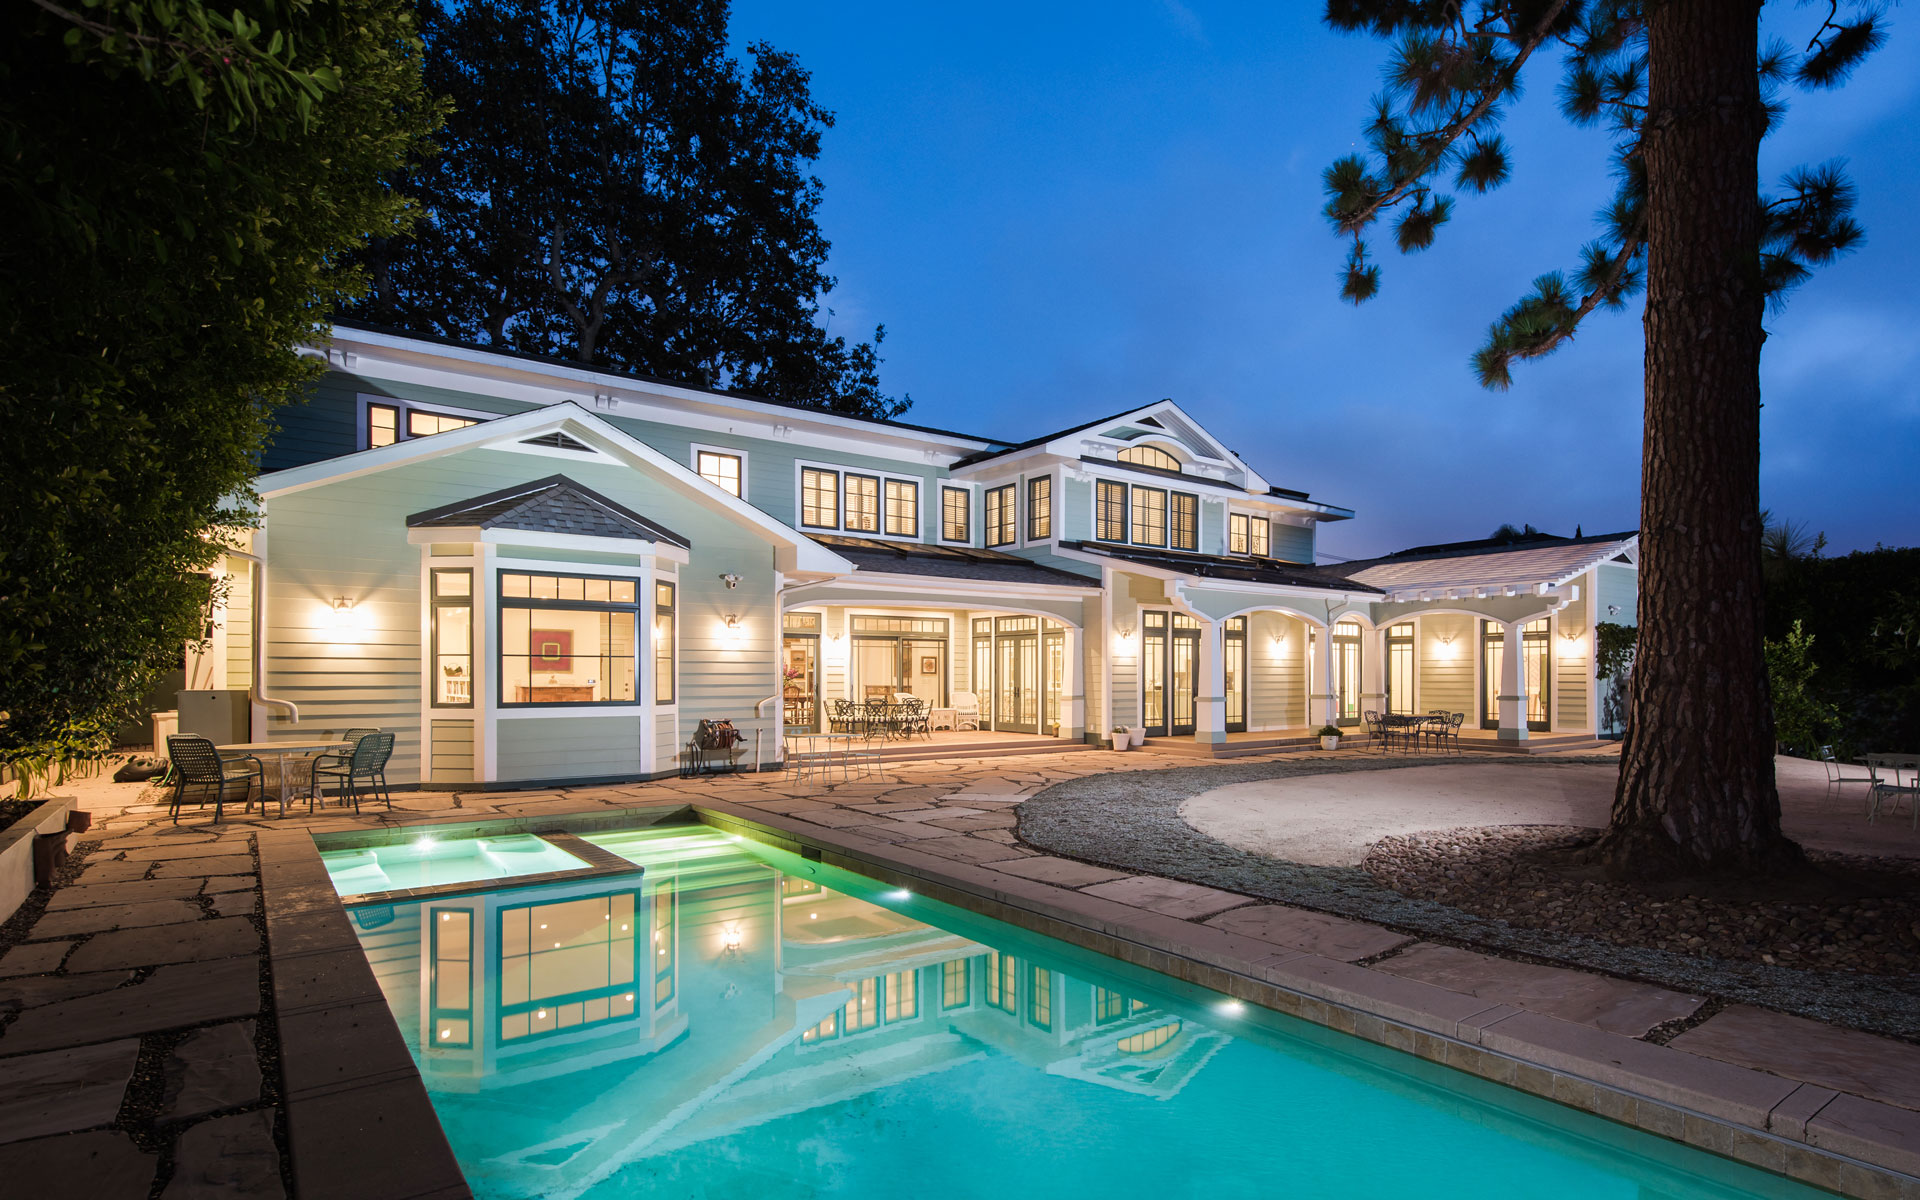 Rear yard with view of pool and porches and dining pation